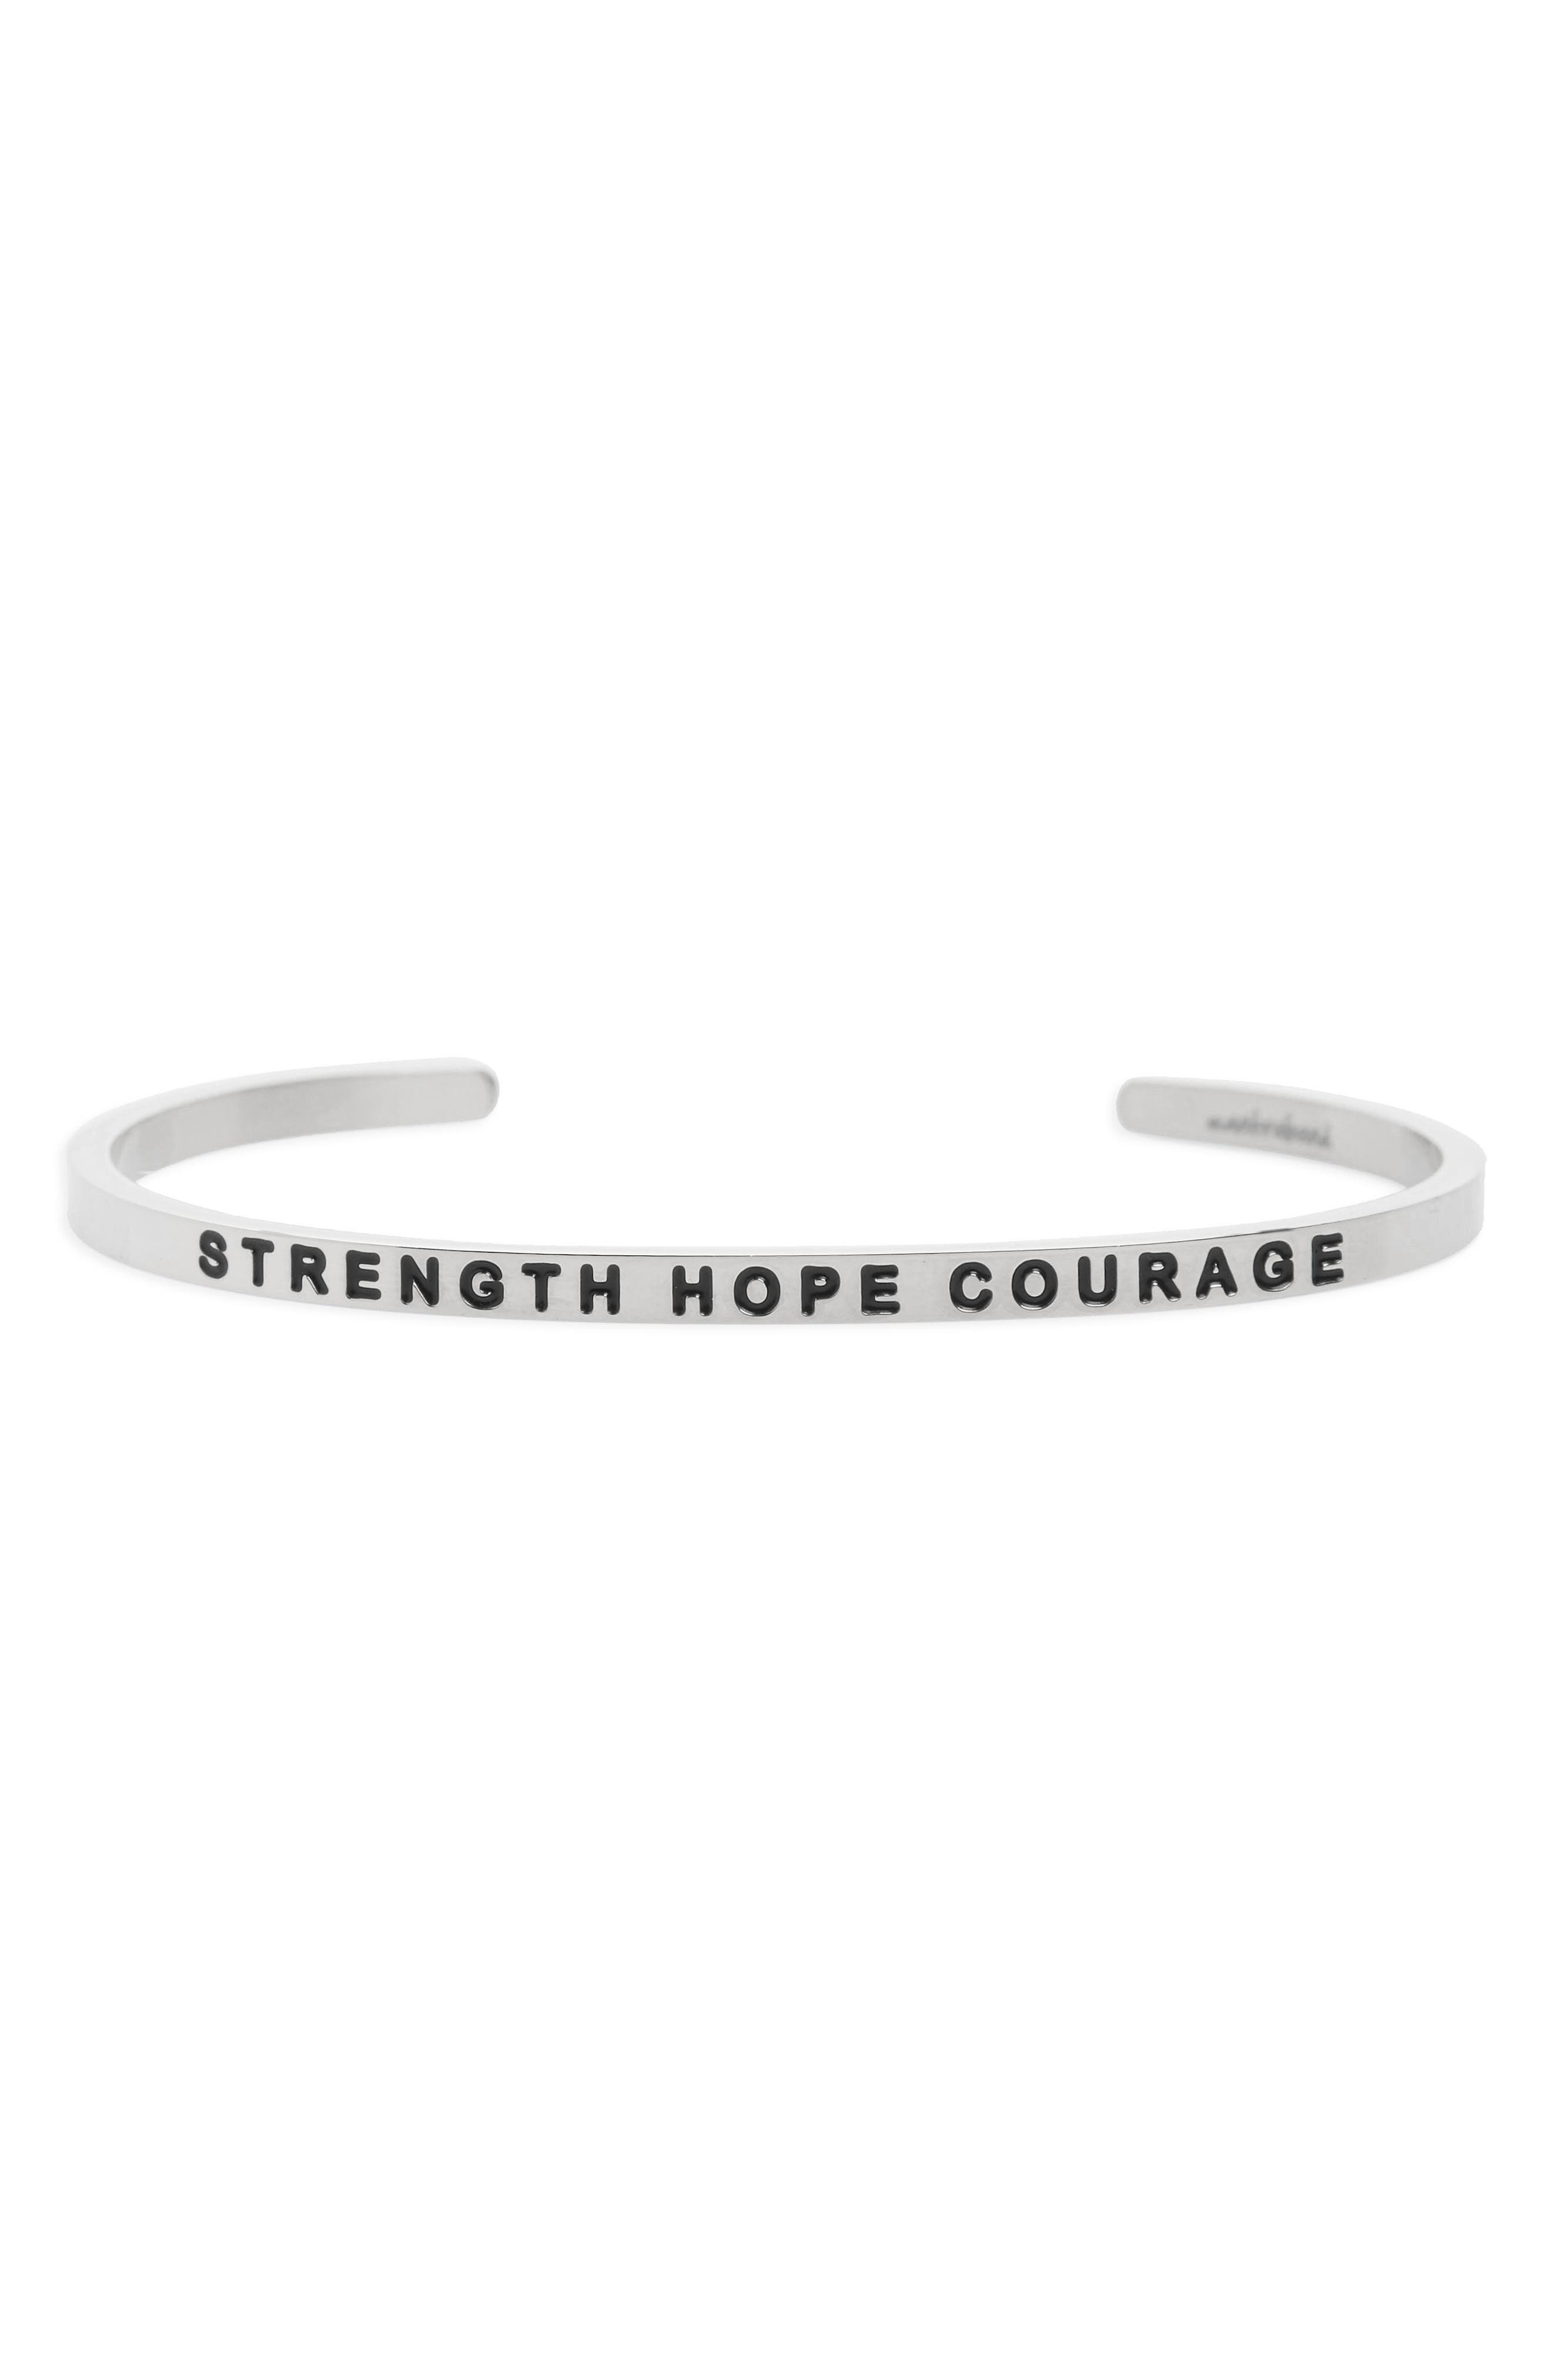 Strength Hope Courage Engraved Cuff,                         Main,                         color, 040